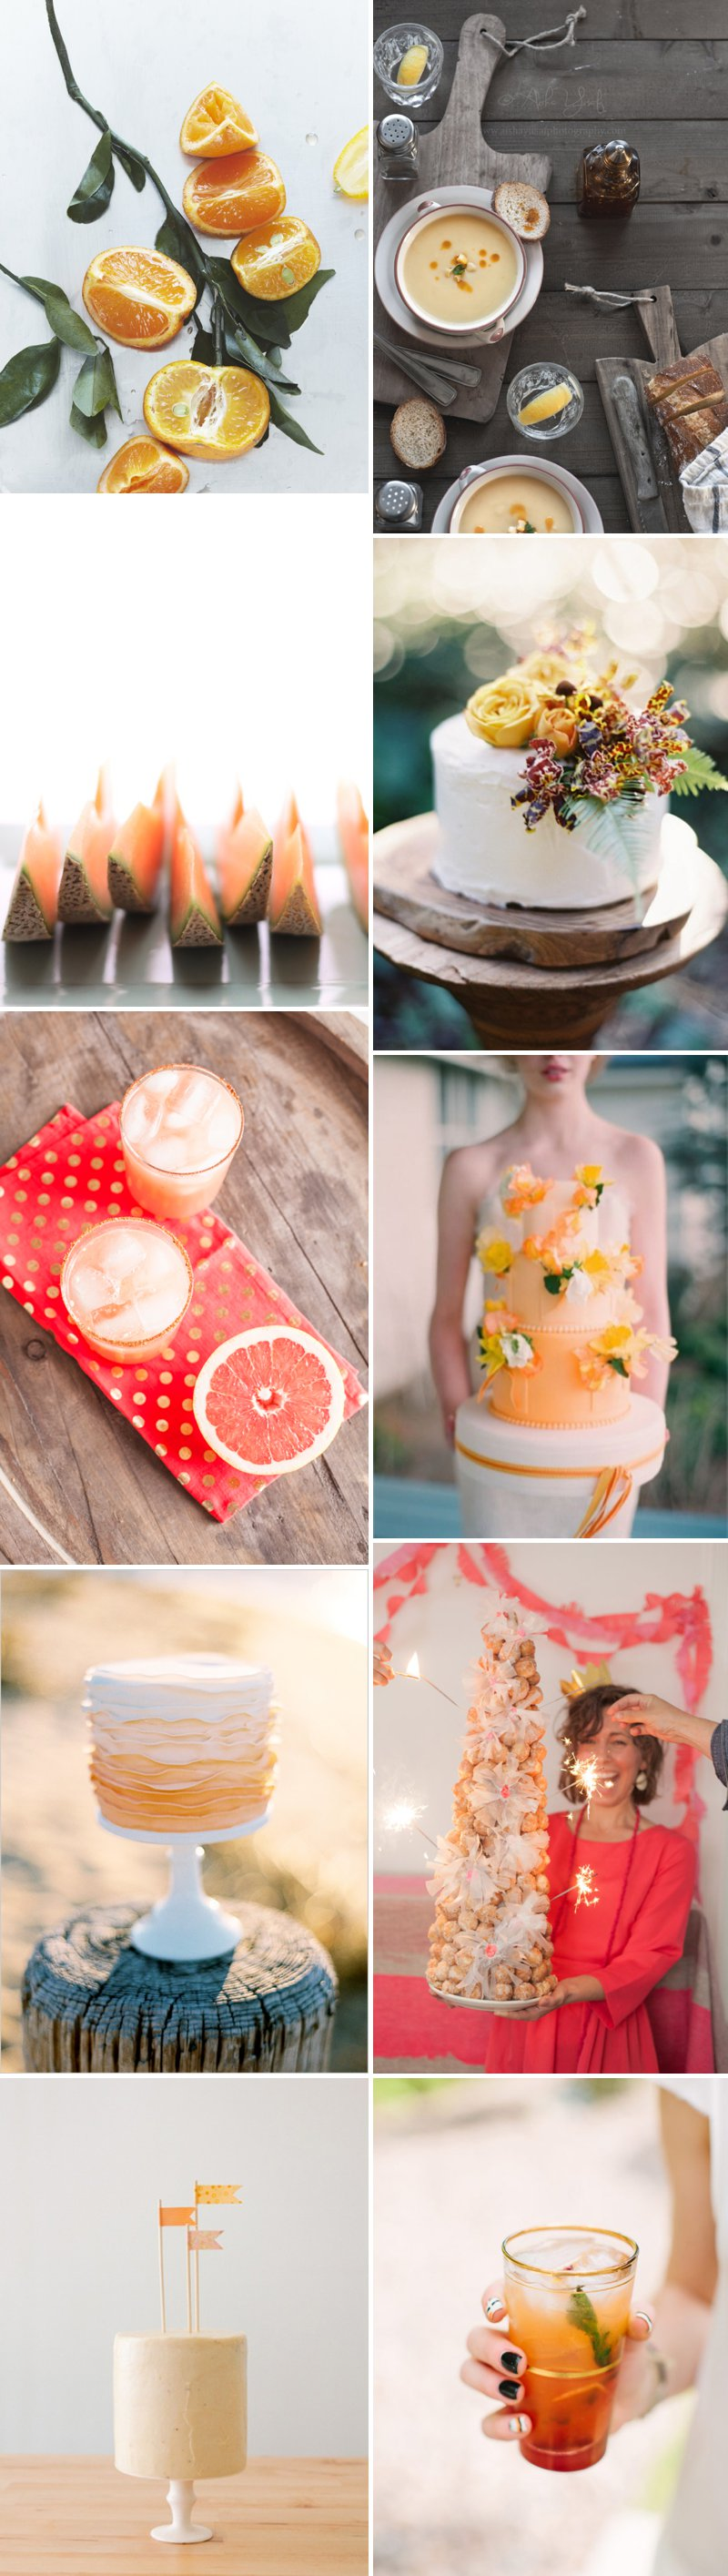 Orange Tangerine Blood Food Wedding Cake Cocktails